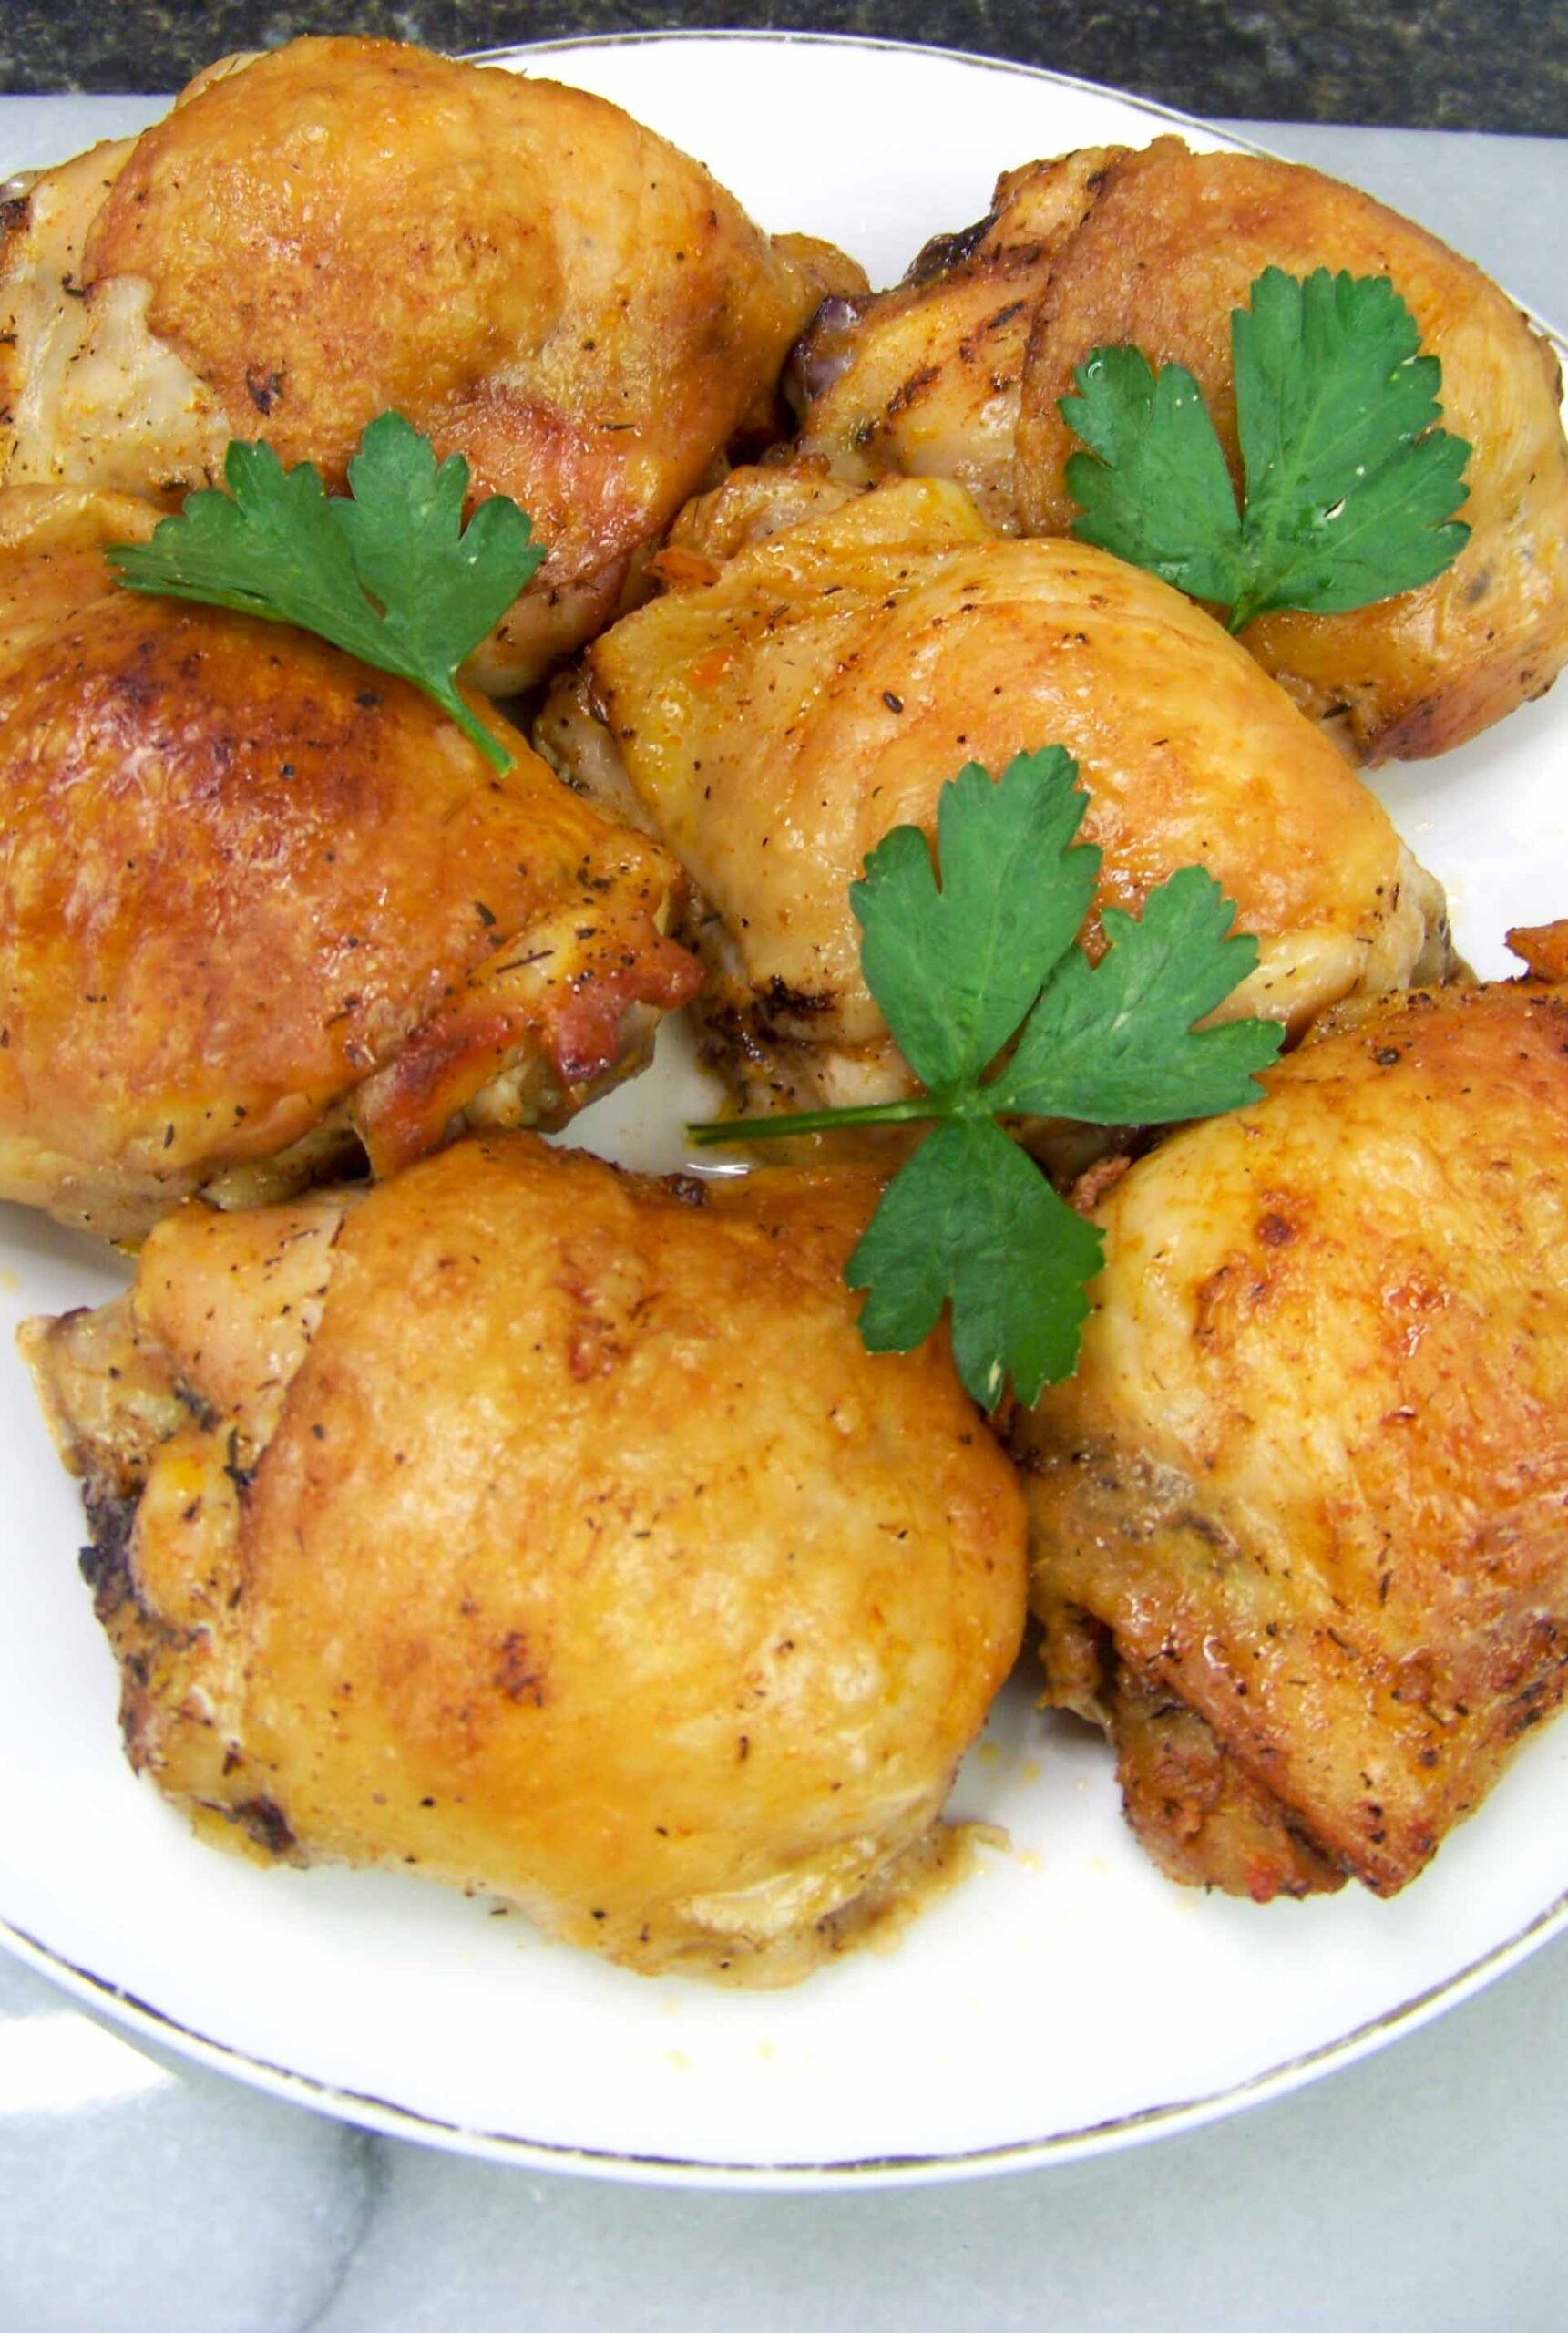 baked chicken thighs on a white plate and garnished with fresh parsley